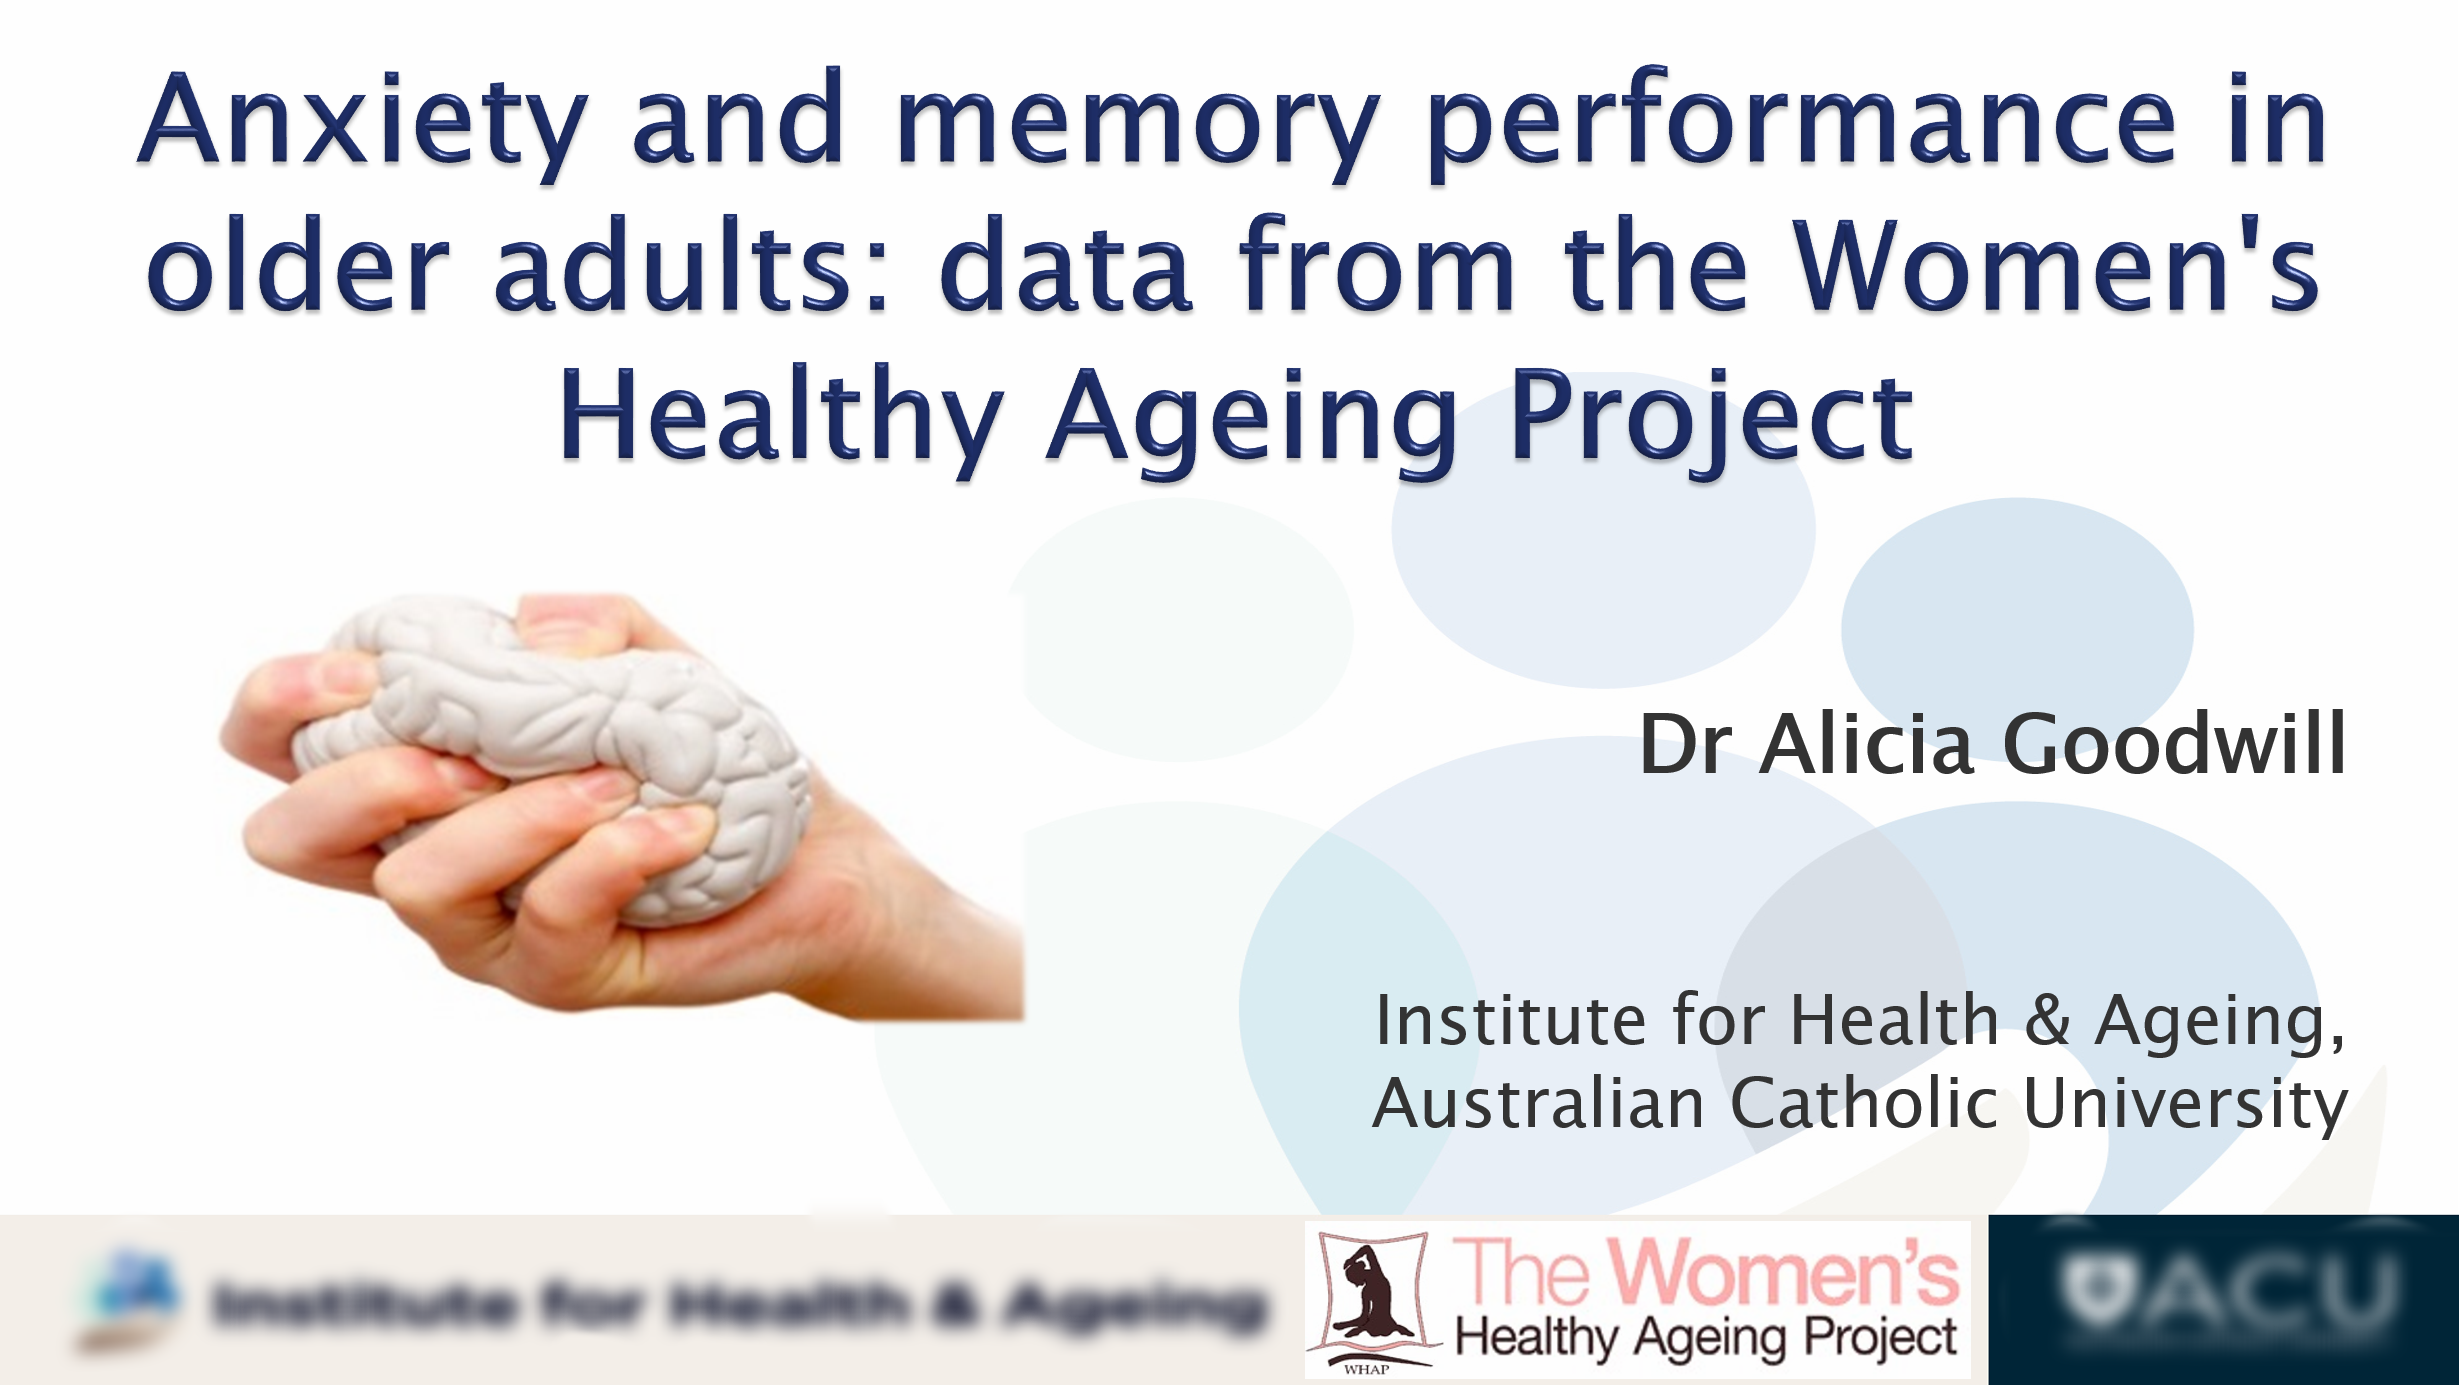 Anxiety and memory performance in older adults - The aim of this study was to examine the associations between late-life anxiety symptoms and verbal episodic memory, as well as the associations between cumulative stress from midlife, and late-life verbal episodic memory, in ageing Australian women. Trends were found for increased severity of anxiety, number of hassles and lower verbal episodic memory, as well as for cumulative severity of stress from midlife (over 20 yrs.) and reduced verbal memory performance in late-life.Citation: Goodwill, A., et al (2017). Anxiety and memory performance in older adults: data from the Women's Healthy Ageing Project. Paper presented at the 18th International Mental Health Conference, Gold Coast, Australia, 21-23 August.